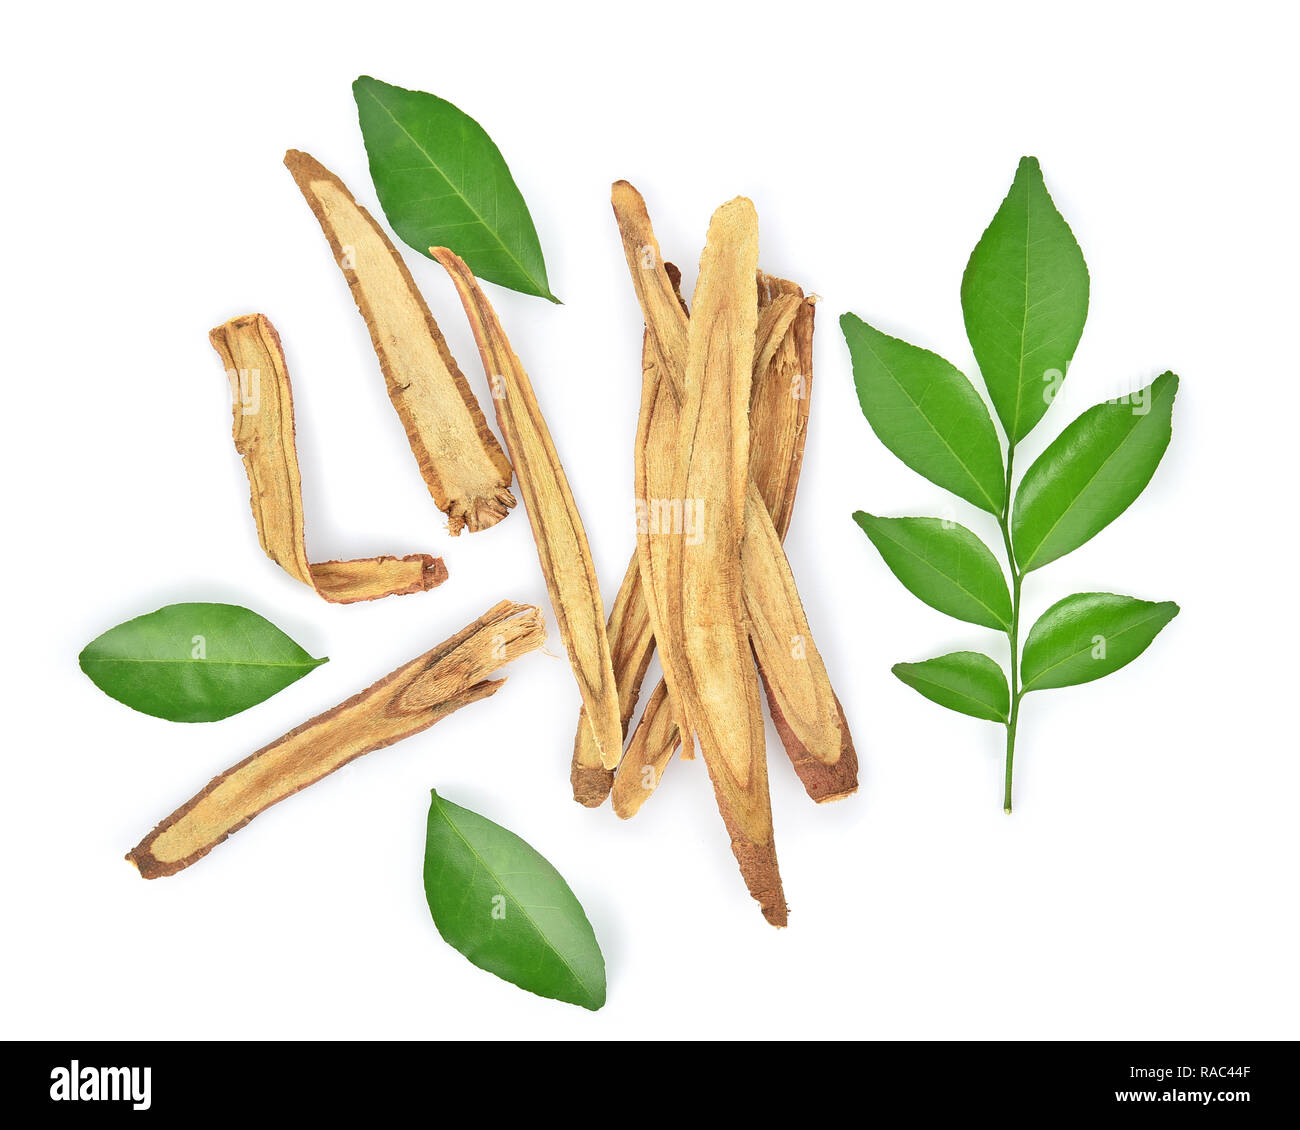 Top view of Slice Licorice roots on white background - Stock Image